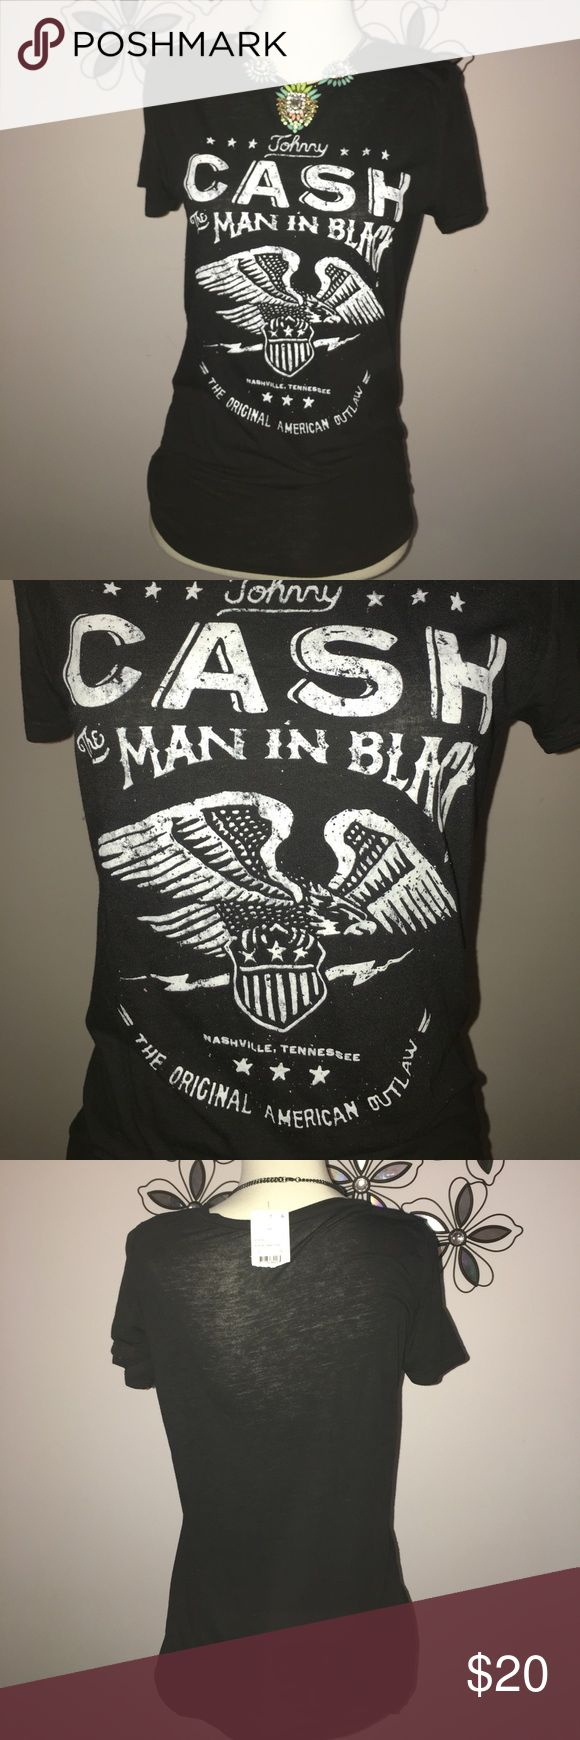 Johnny CASH T-shirt Johnny CASH T-shirt. Brand new with tags. Size Small/medium.Necklace not included! boutique Tops Tees - Short Sleeve